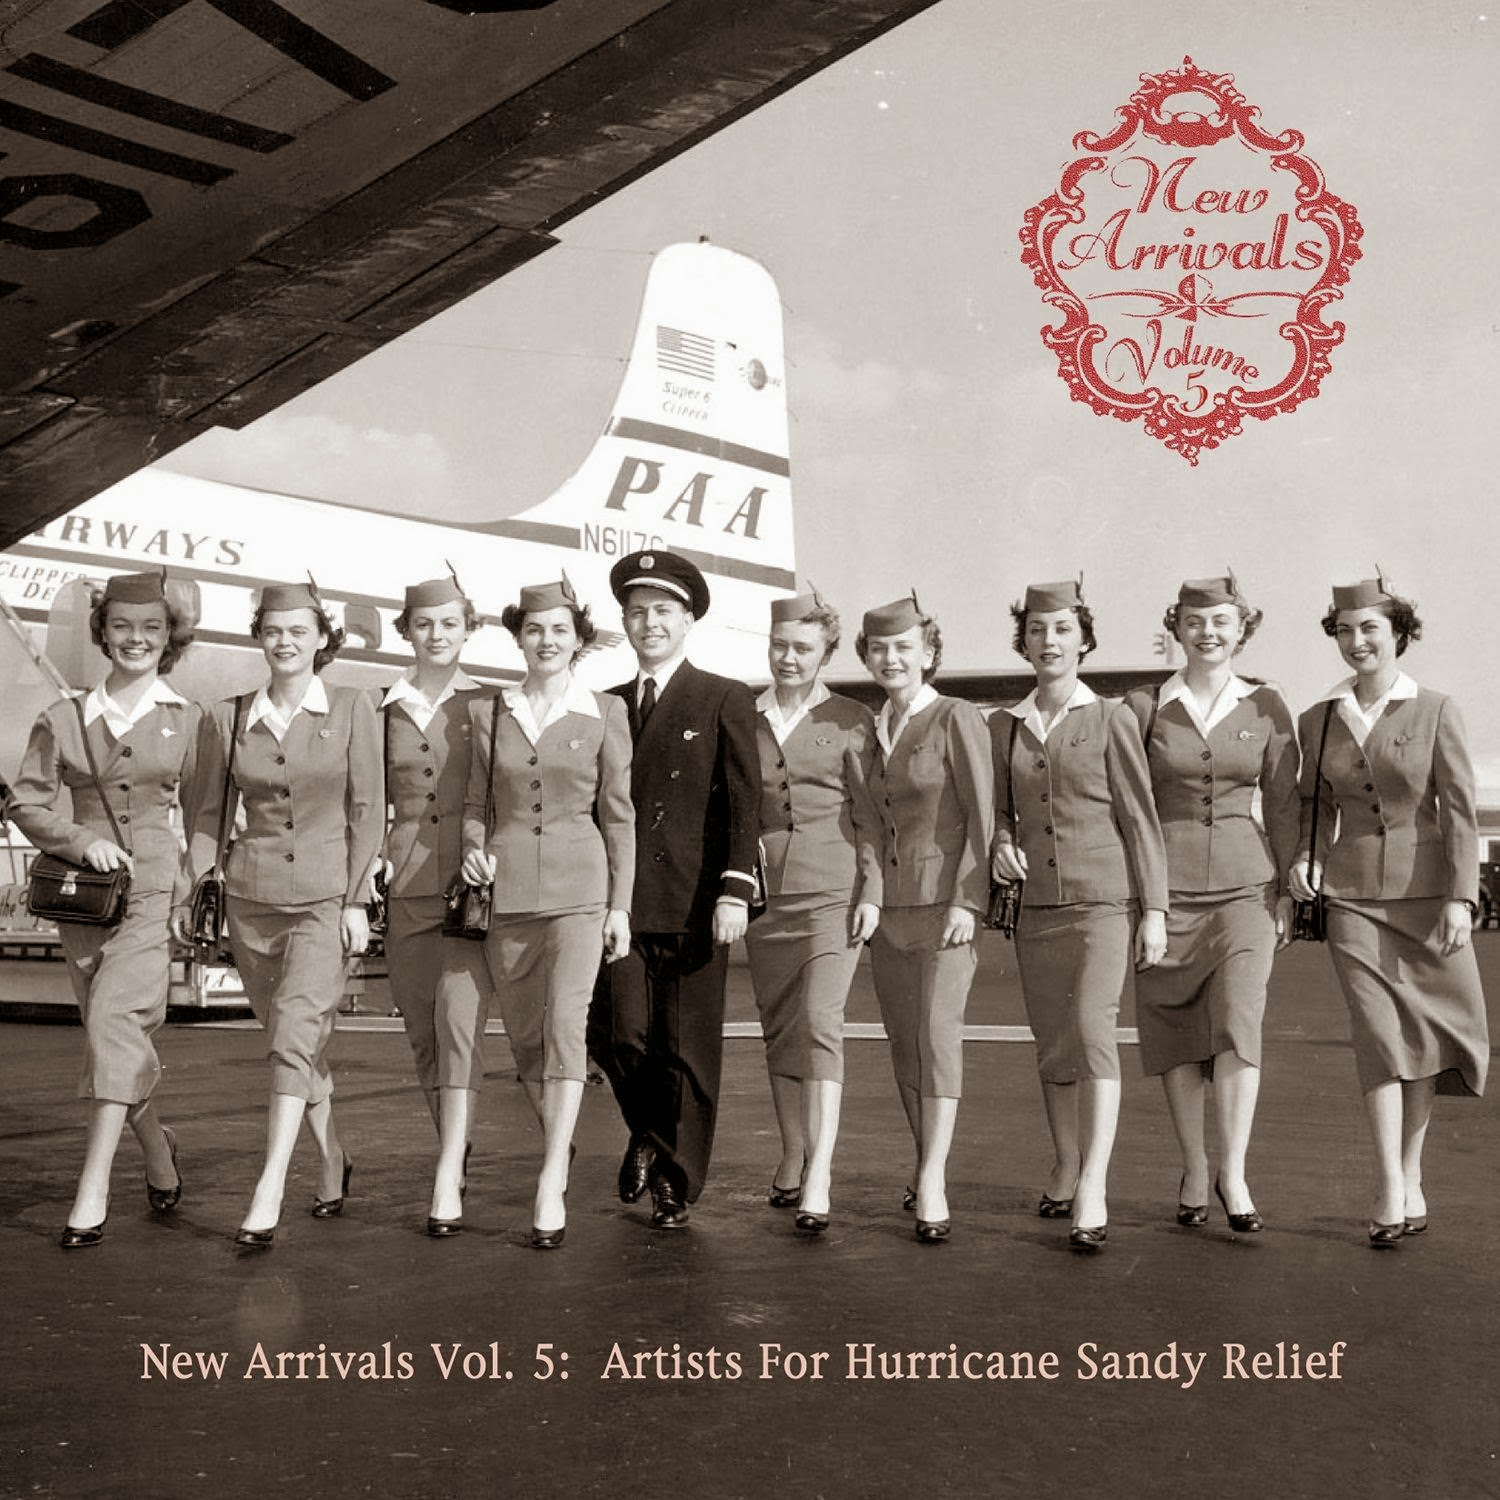 New Arrivals Vol 5: Artists for Hurricane Sandy Relief